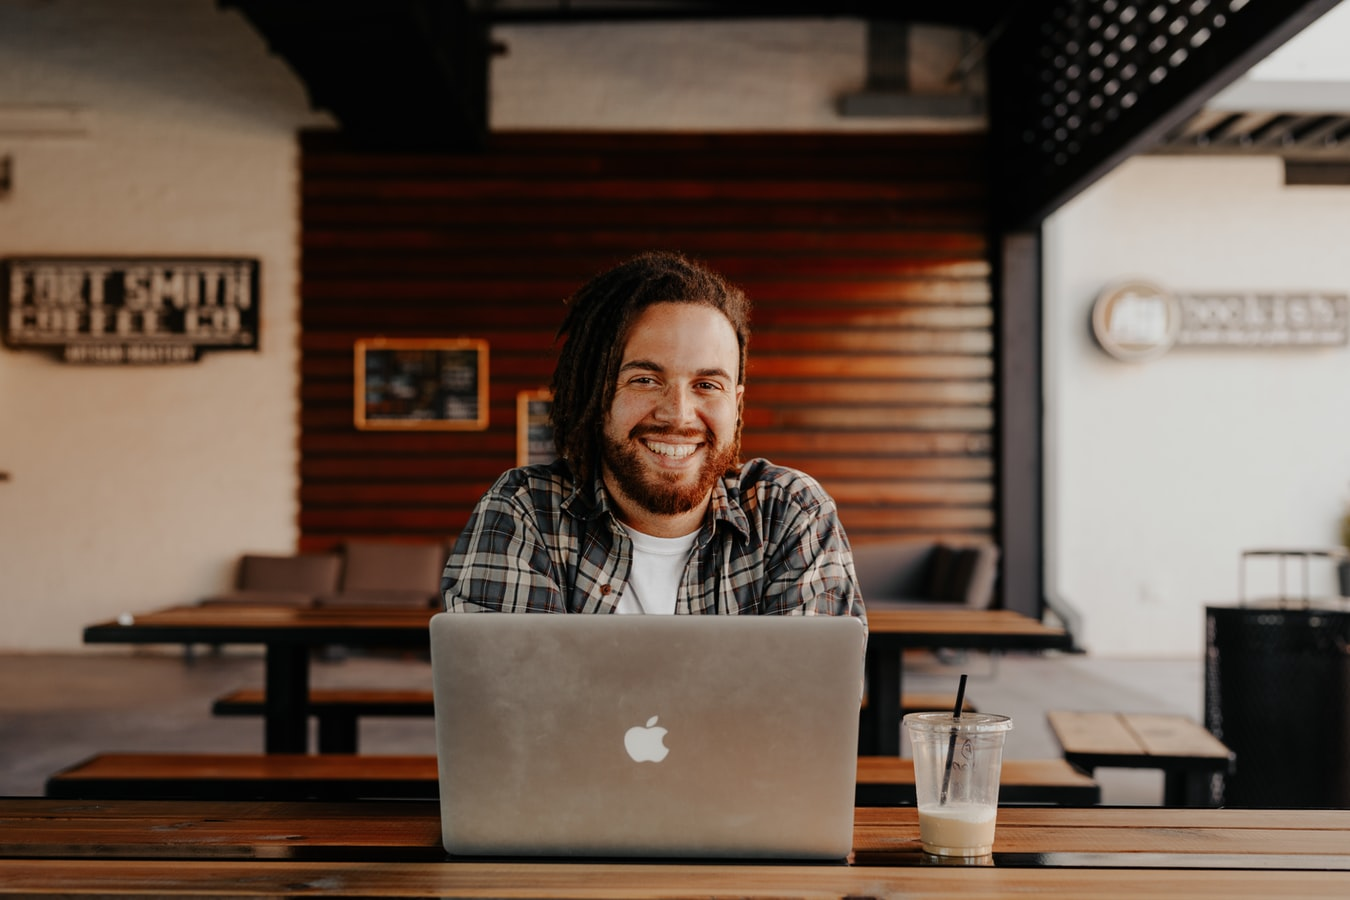 Smiling man sitting at his laptop